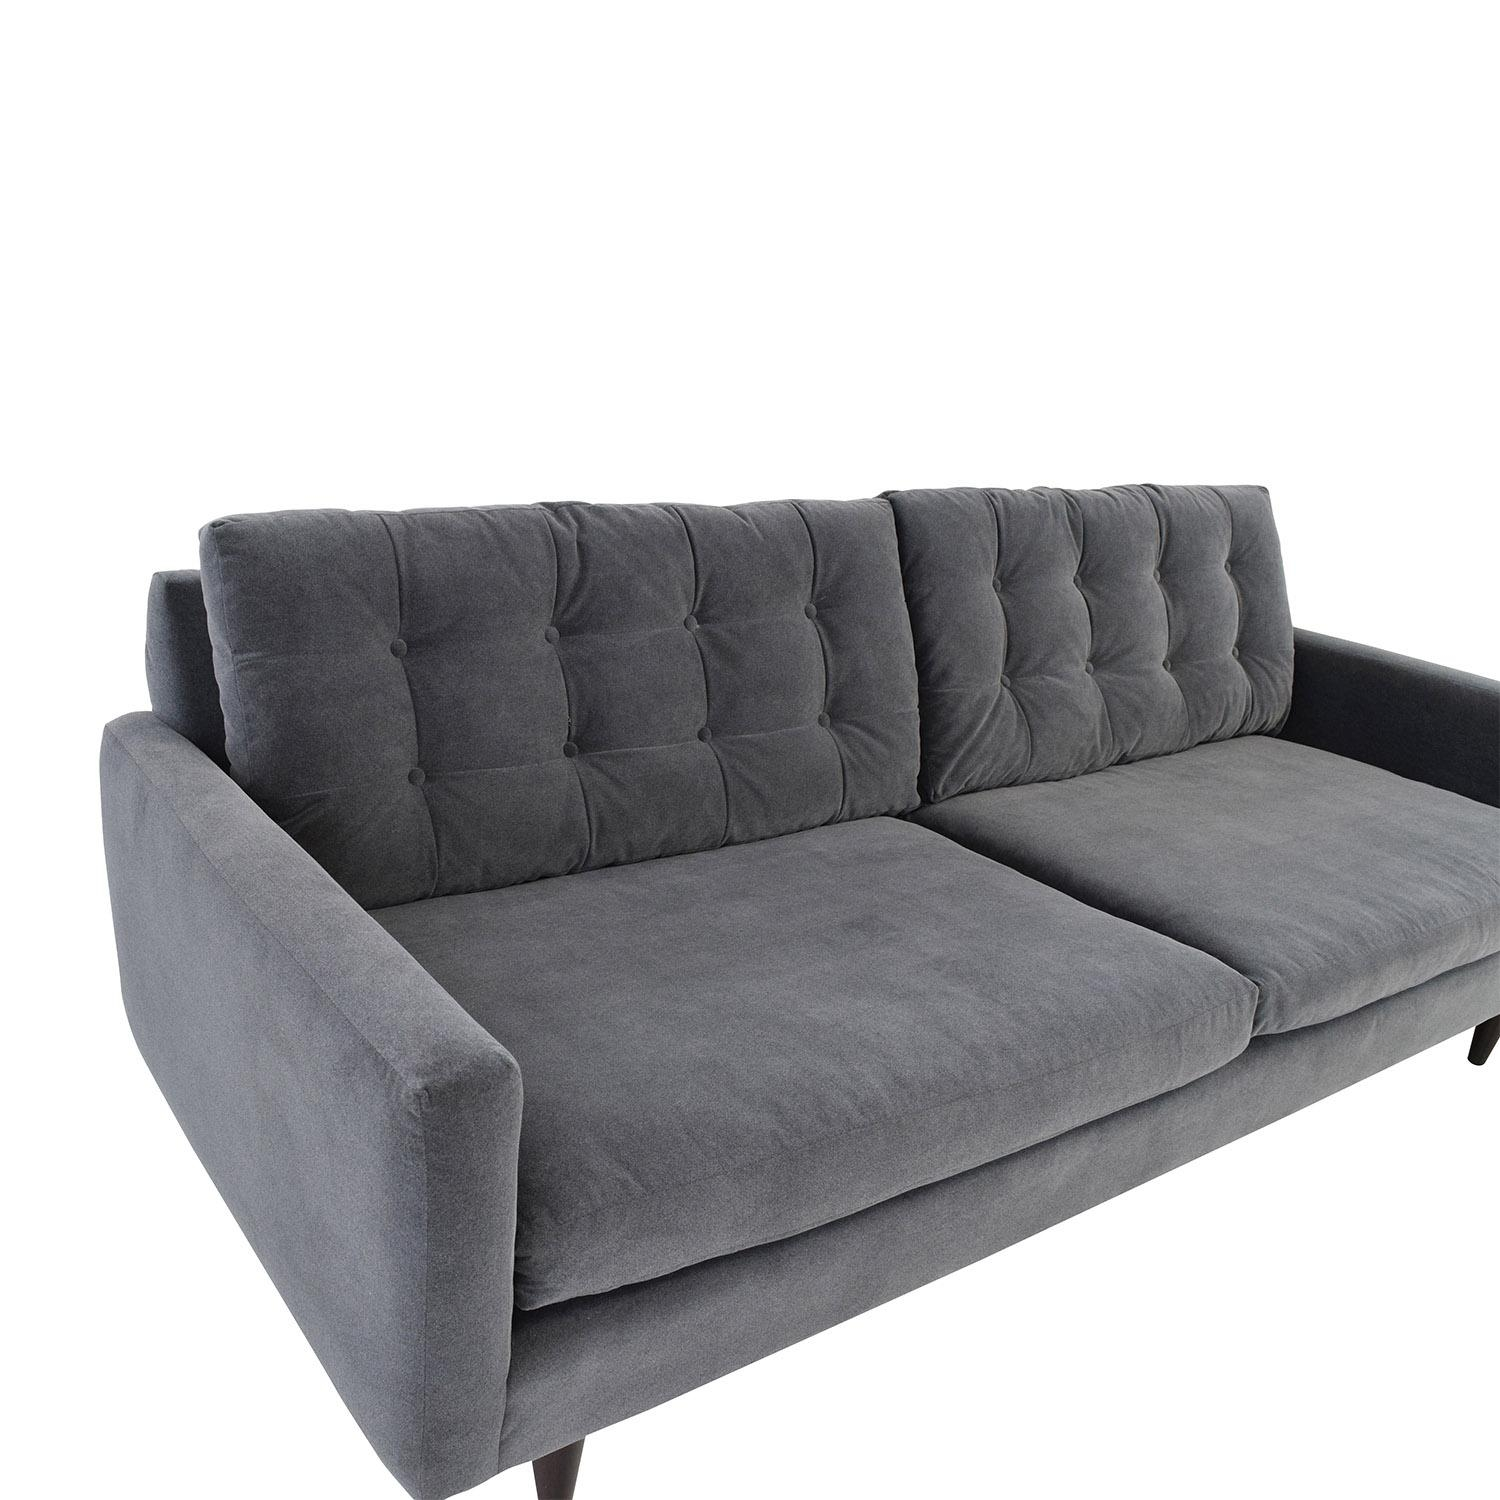 Sofas Center : Unusual Crate And Barrel Sleeper Sofa Images Ideas Throughout Crate And Barrel Sleeper Sofas (Image 17 of 20)